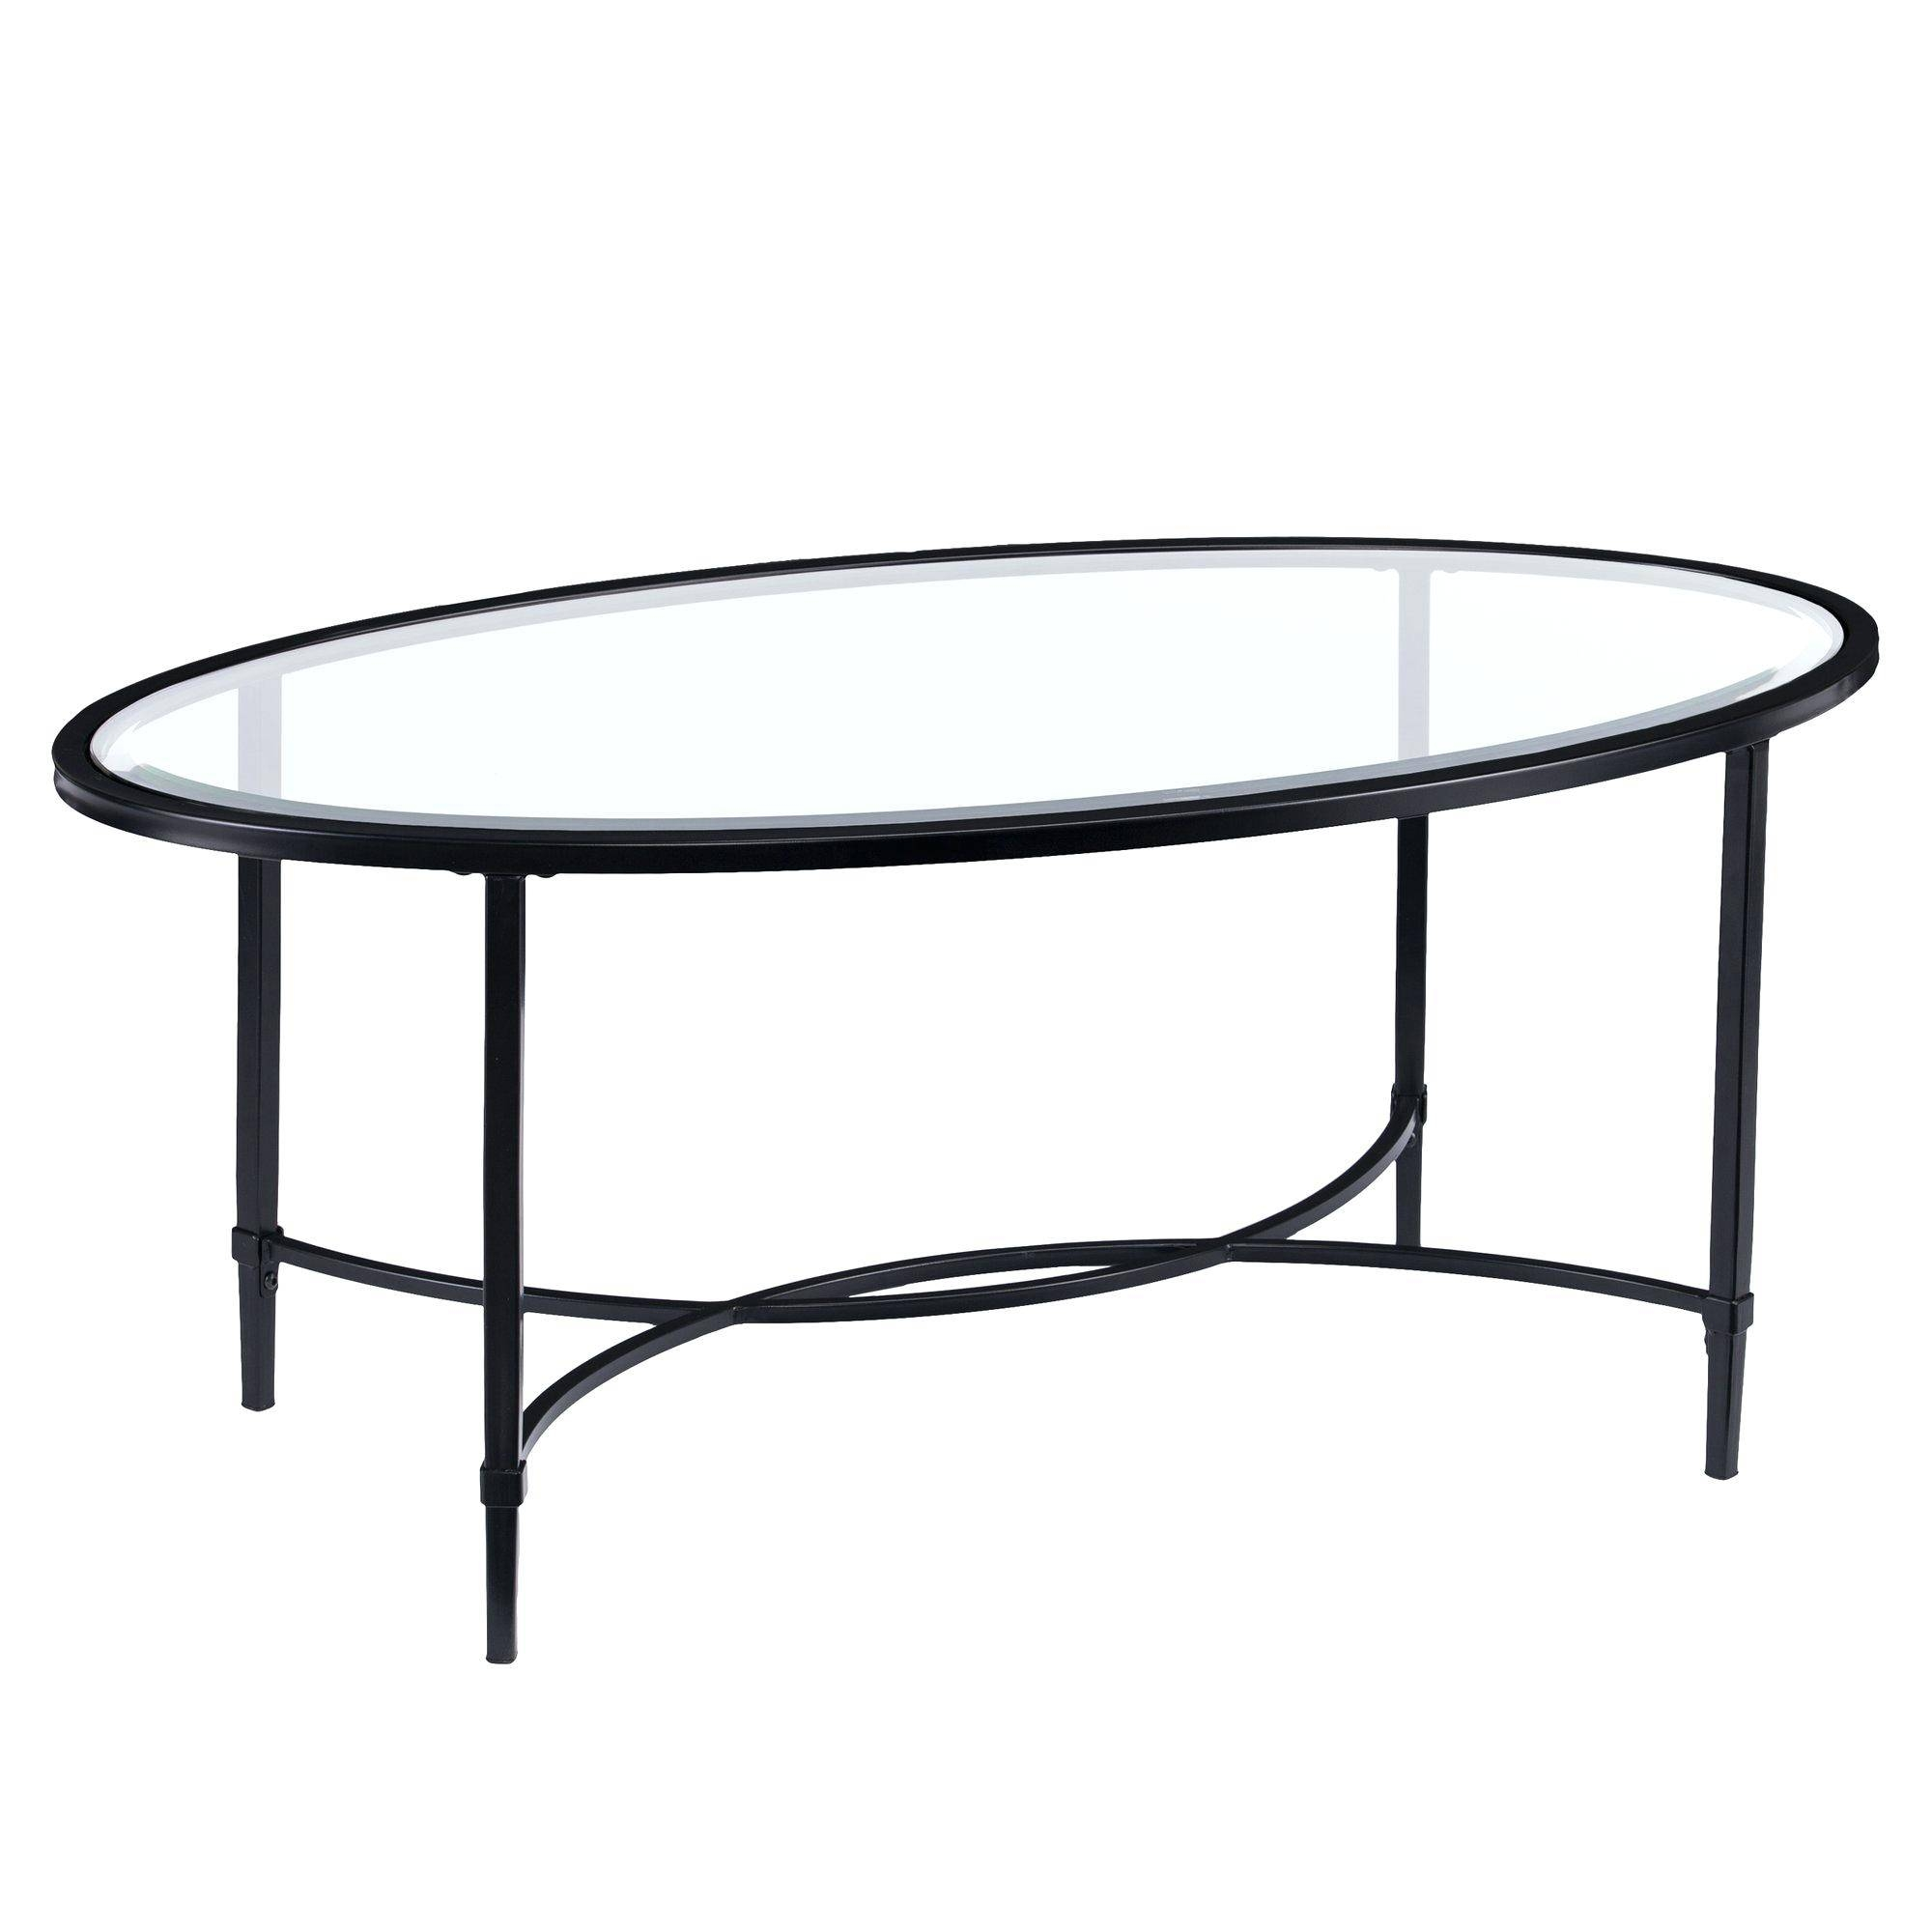 Coffee Table ~ Metal And Tempered Glass Coffee Table With 3 Clocks intended for Clock Coffee Tables Round Shaped (Image 12 of 30)